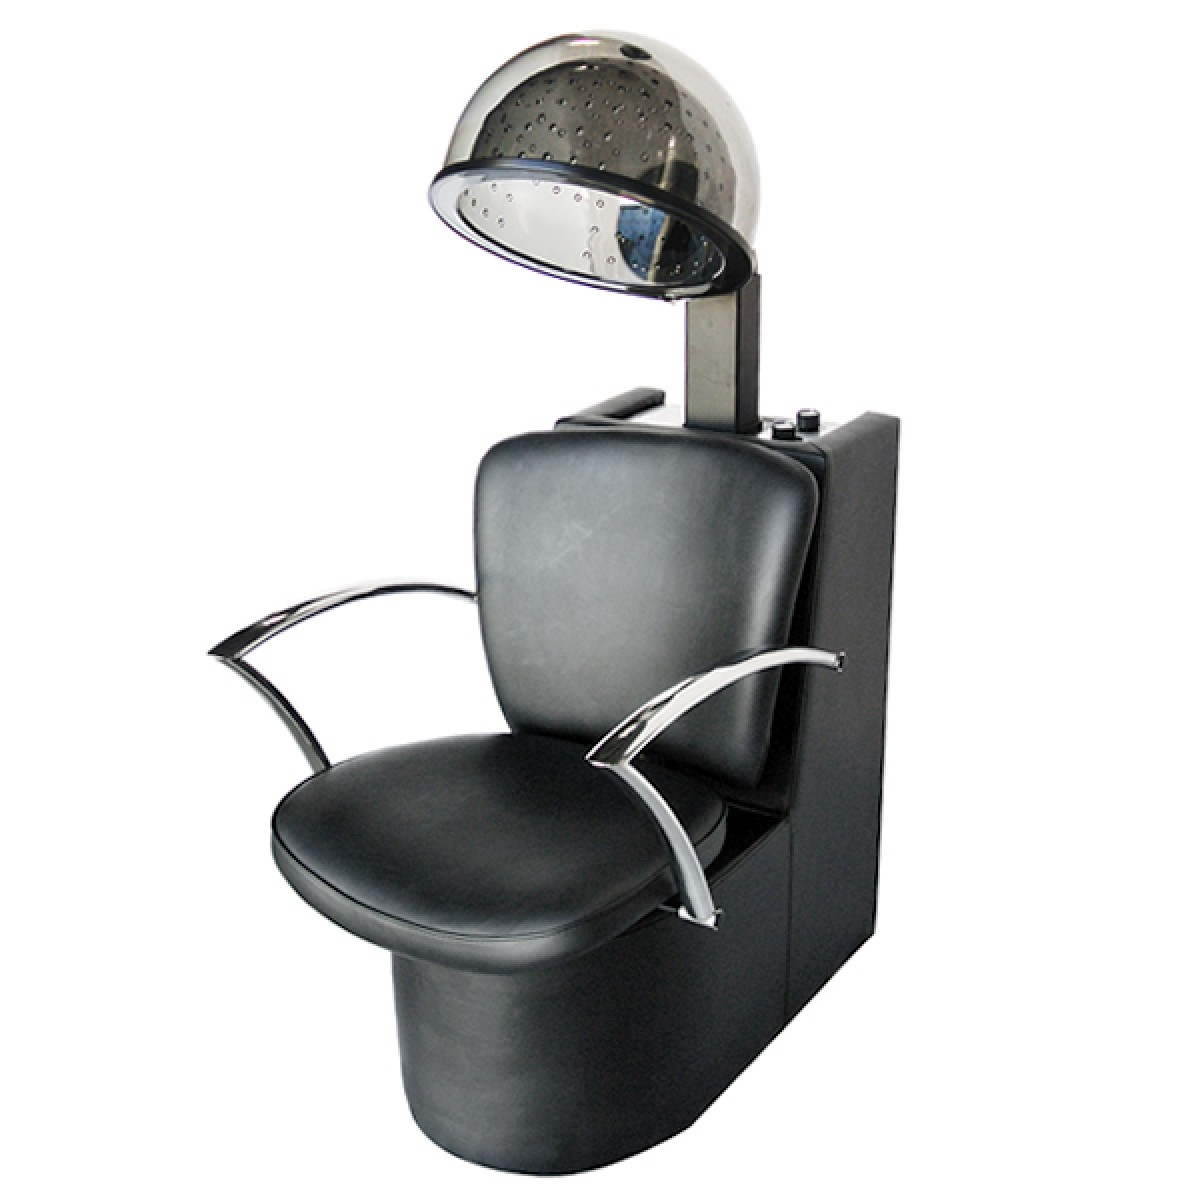 Hair salon equipment near New York, Beauty Salon Furniture near NYC